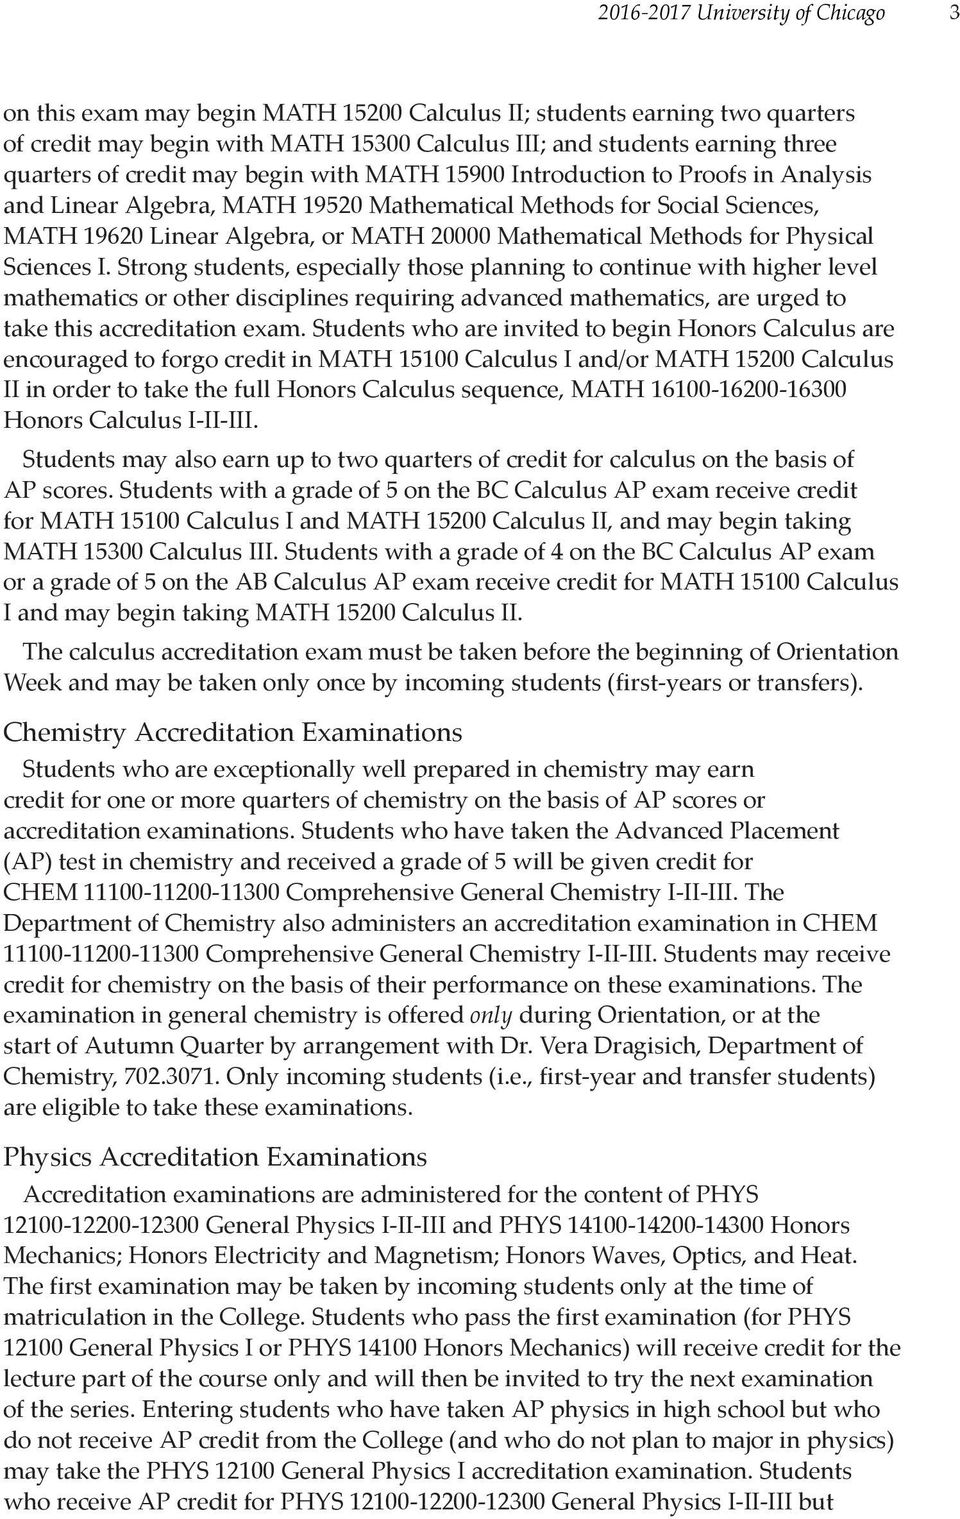 Physical Sciences I. Strong students, especially those planning to continue with higher level mathematics or other disciplines requiring advanced mathematics, are urged to take this acation exam.